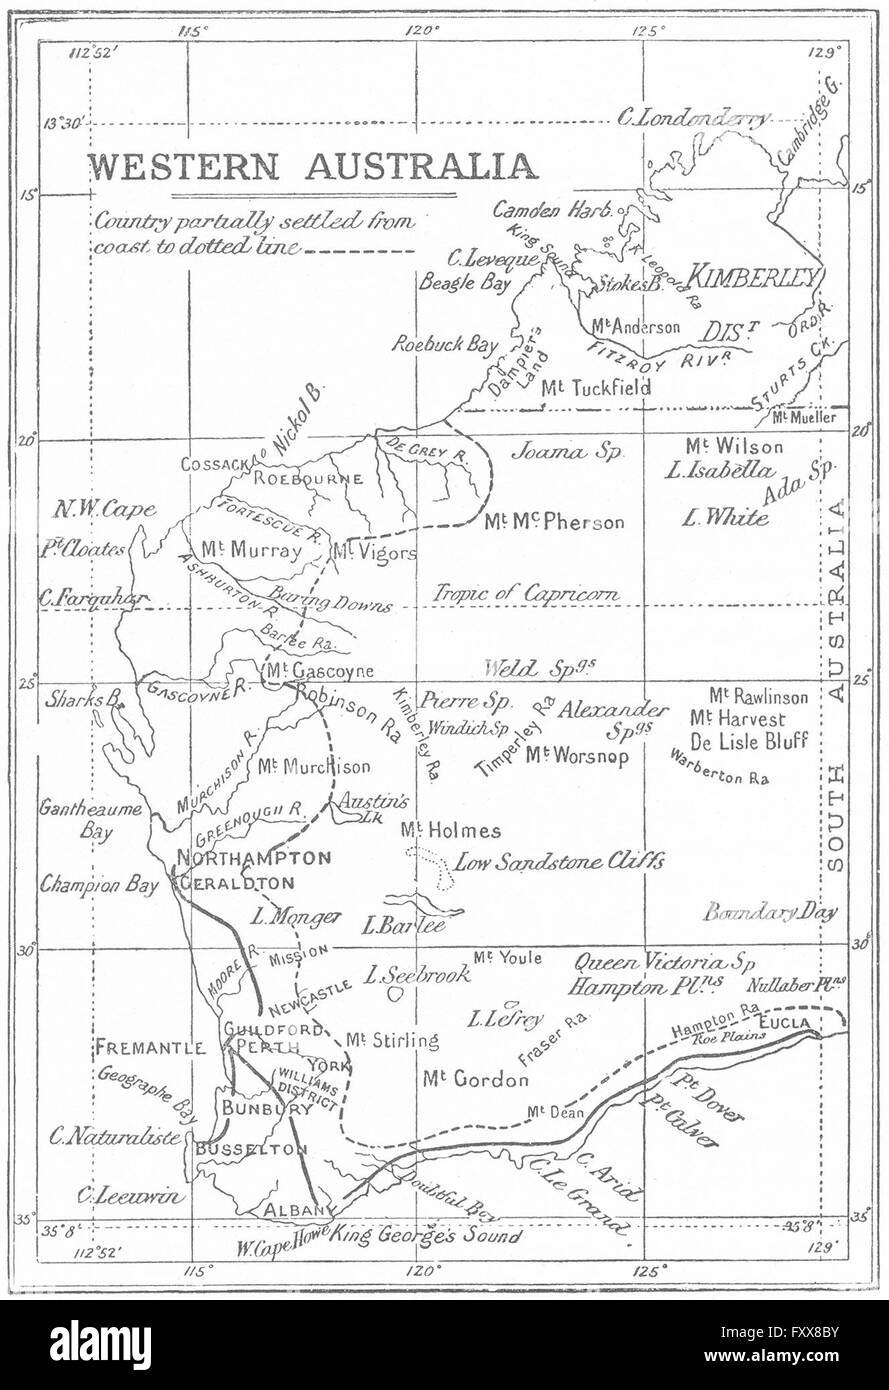 Map Of Western Australia With Towns.Western Australia Showing Settled Areas Towns 1897 Antique Map